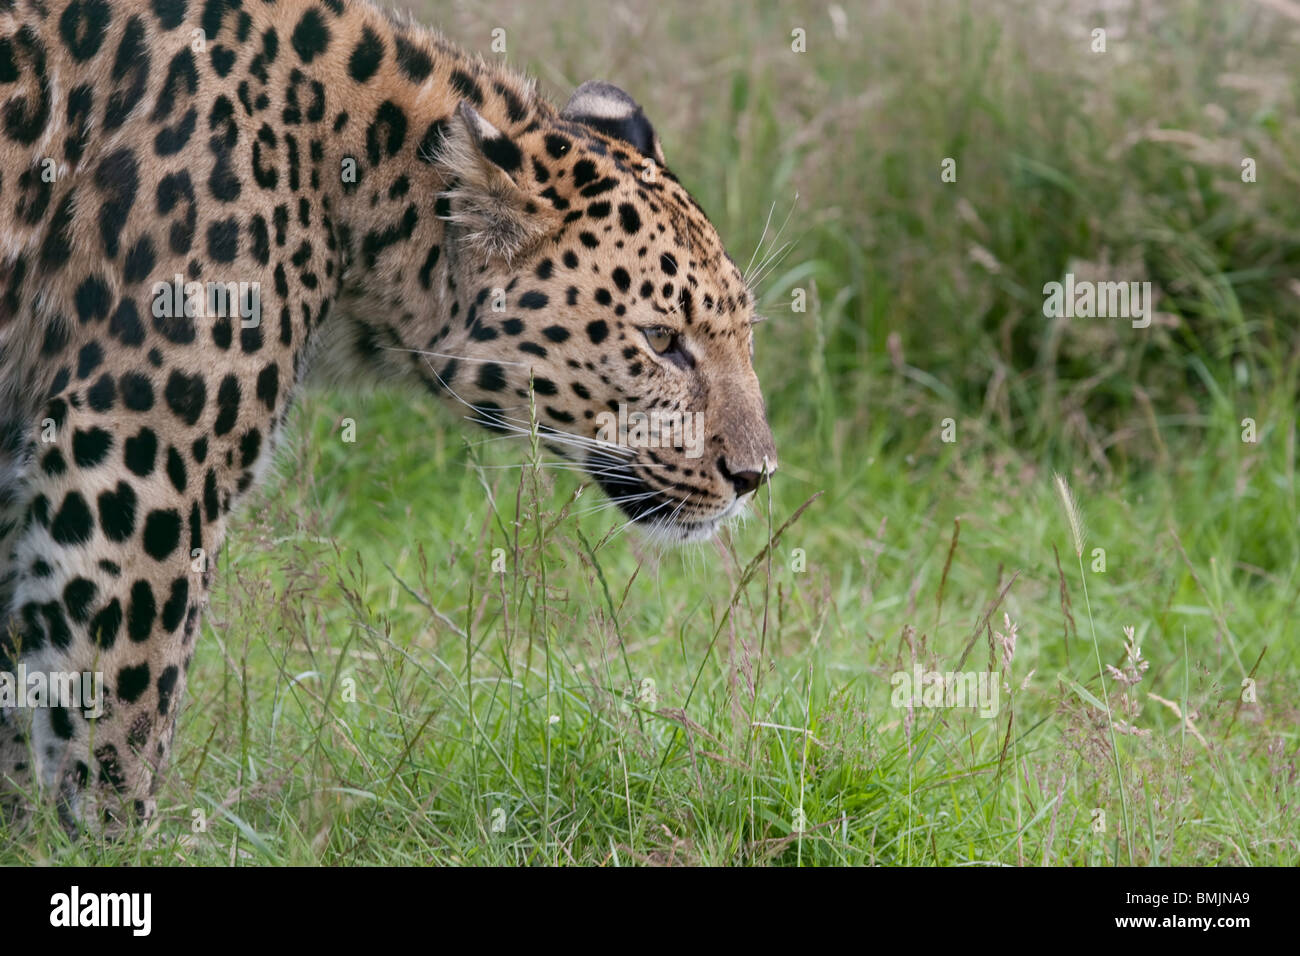 Leopard - grass background - Stock Image